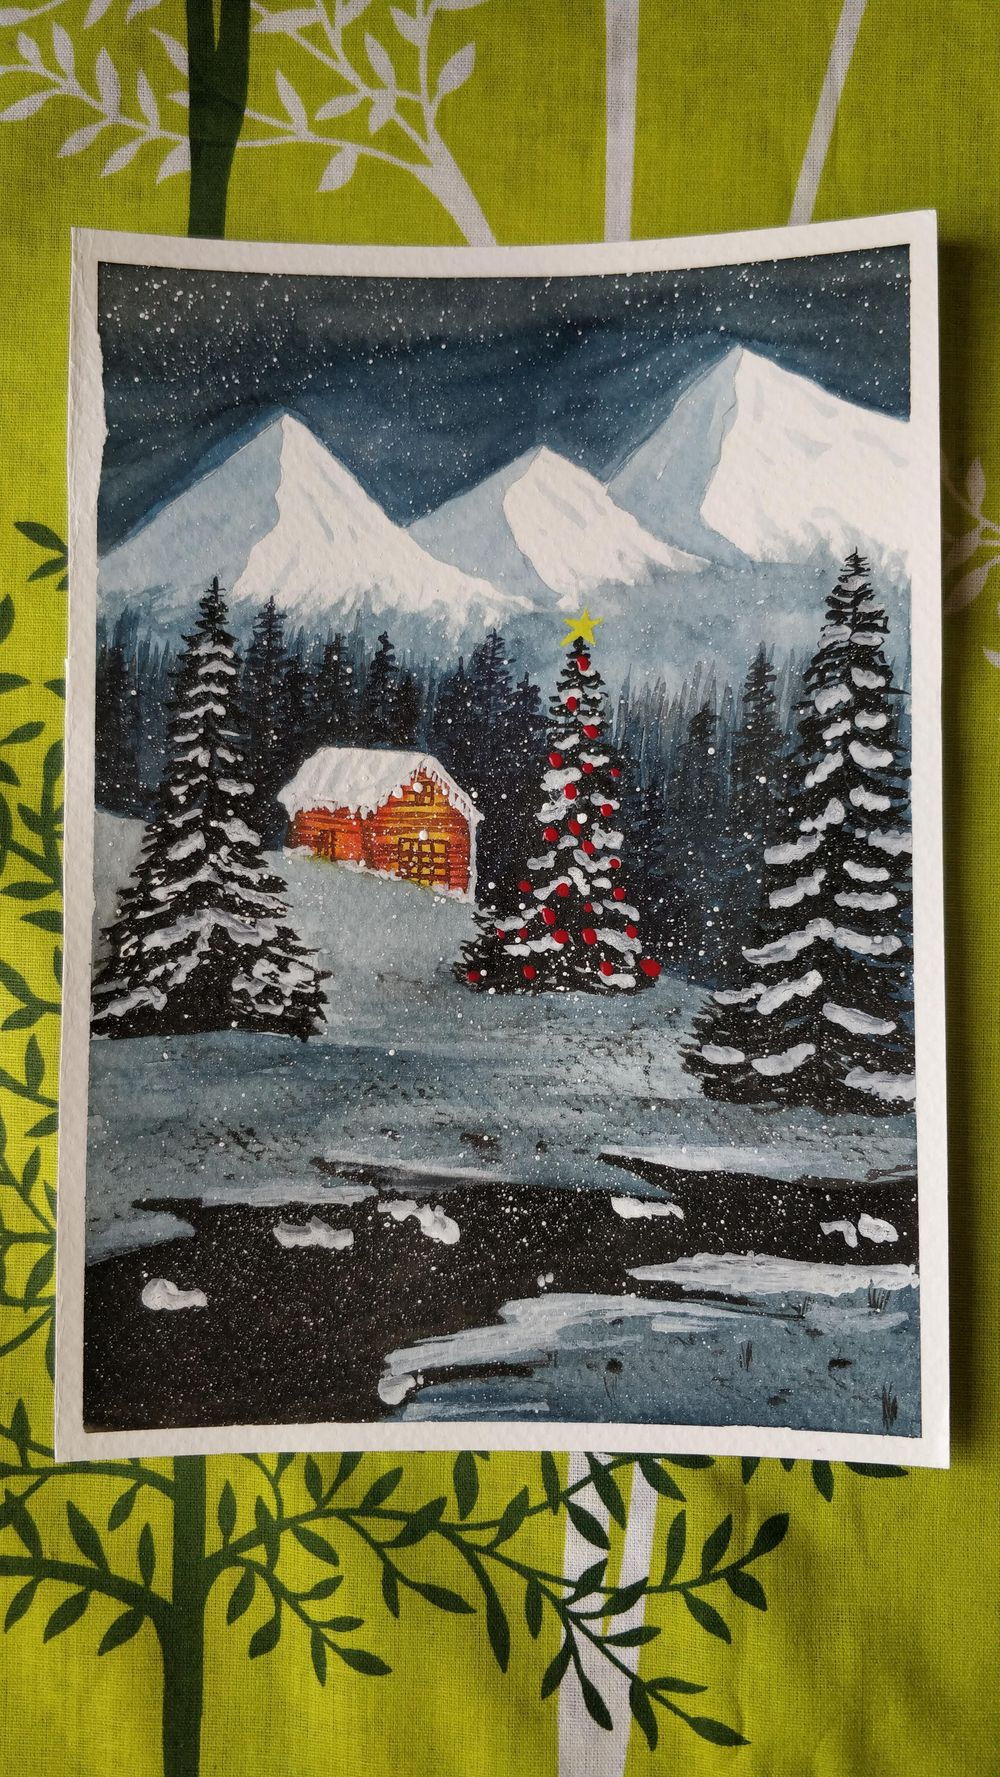 Snowy winter landscape - image 1 - student project